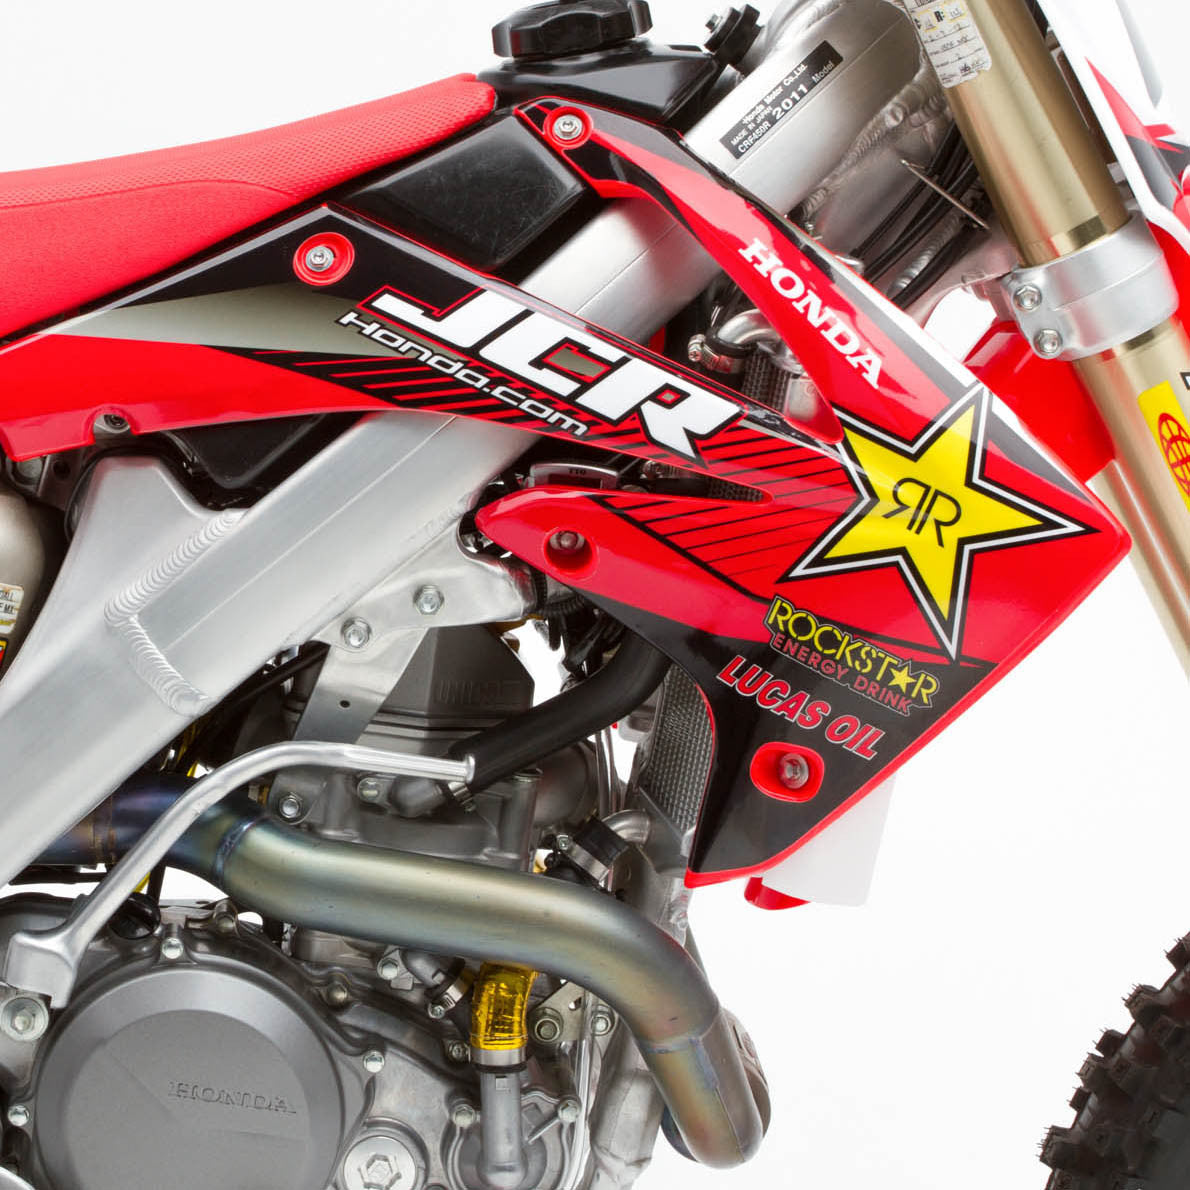 JCR Rockstar Graphic Kit